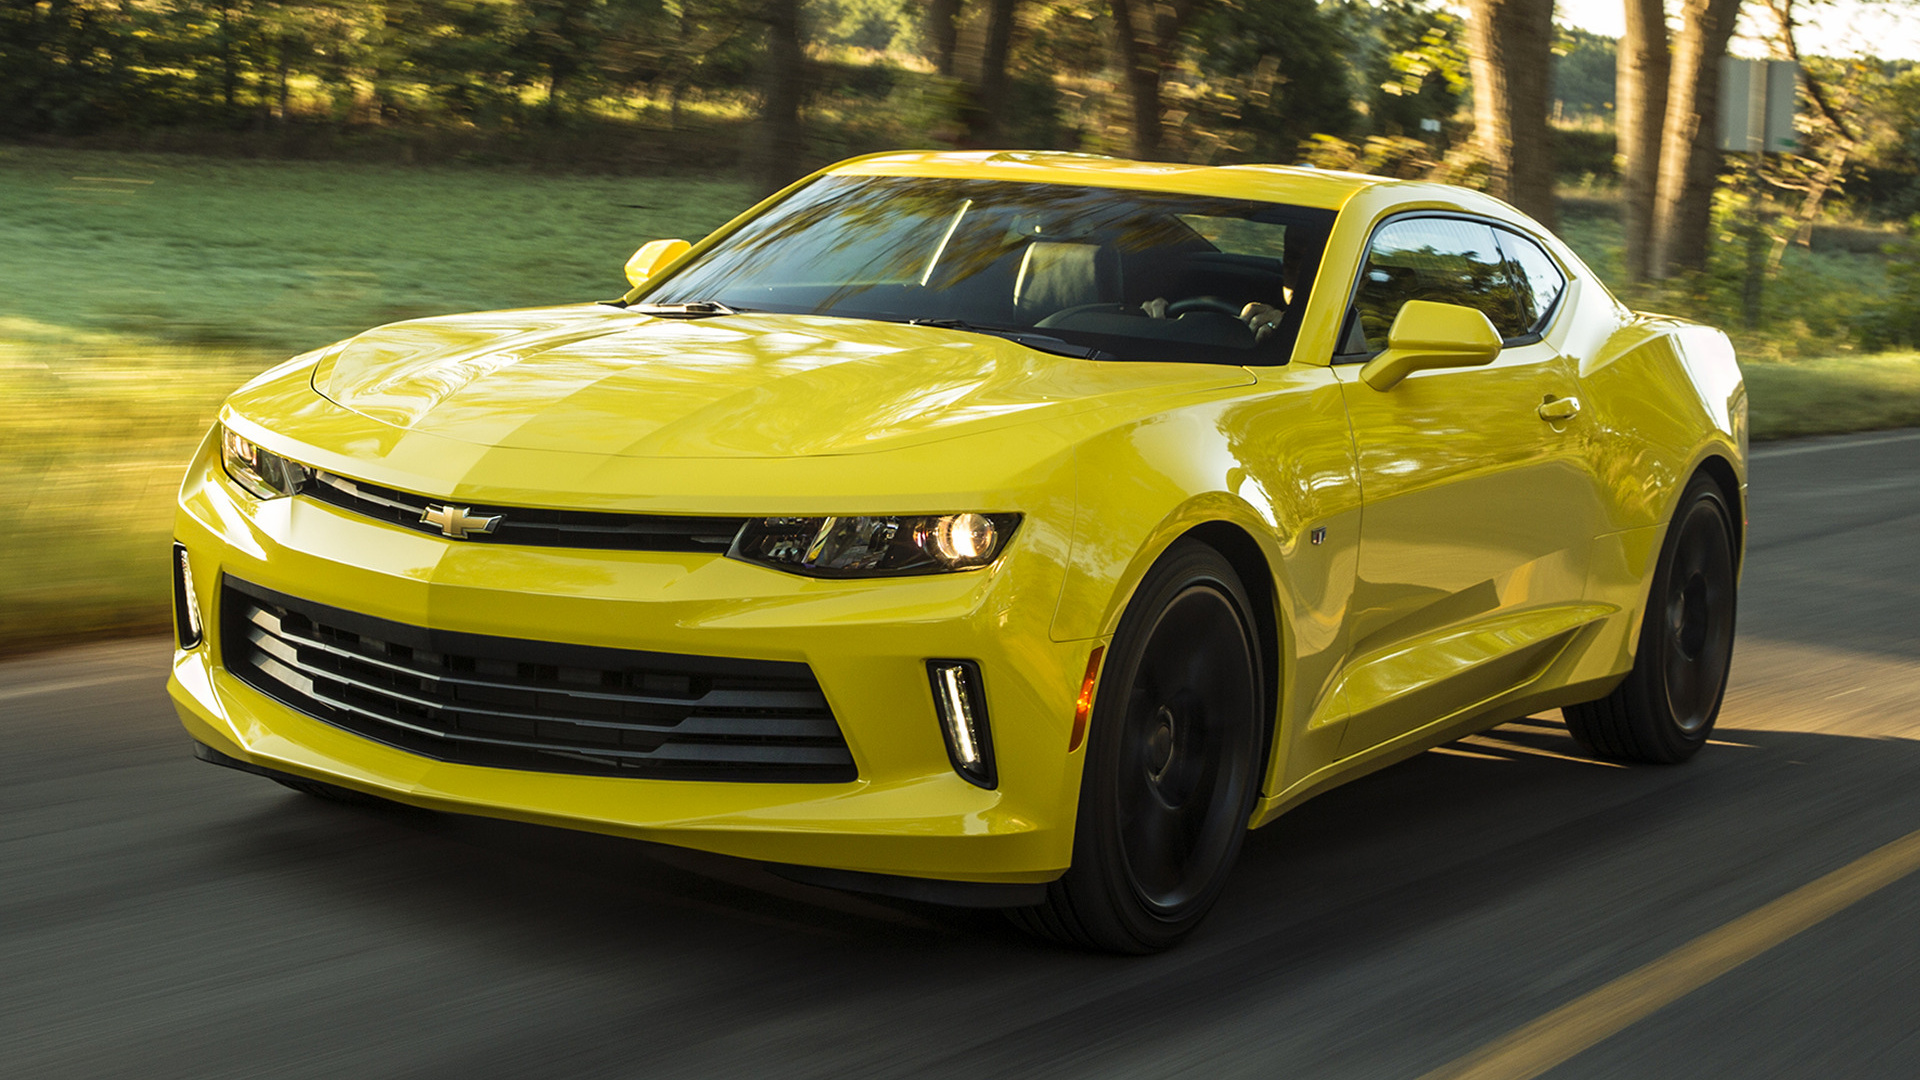 Chevrolet Camaro 2016 Wallpapers and HD Images   Car Pixel 1920x1080